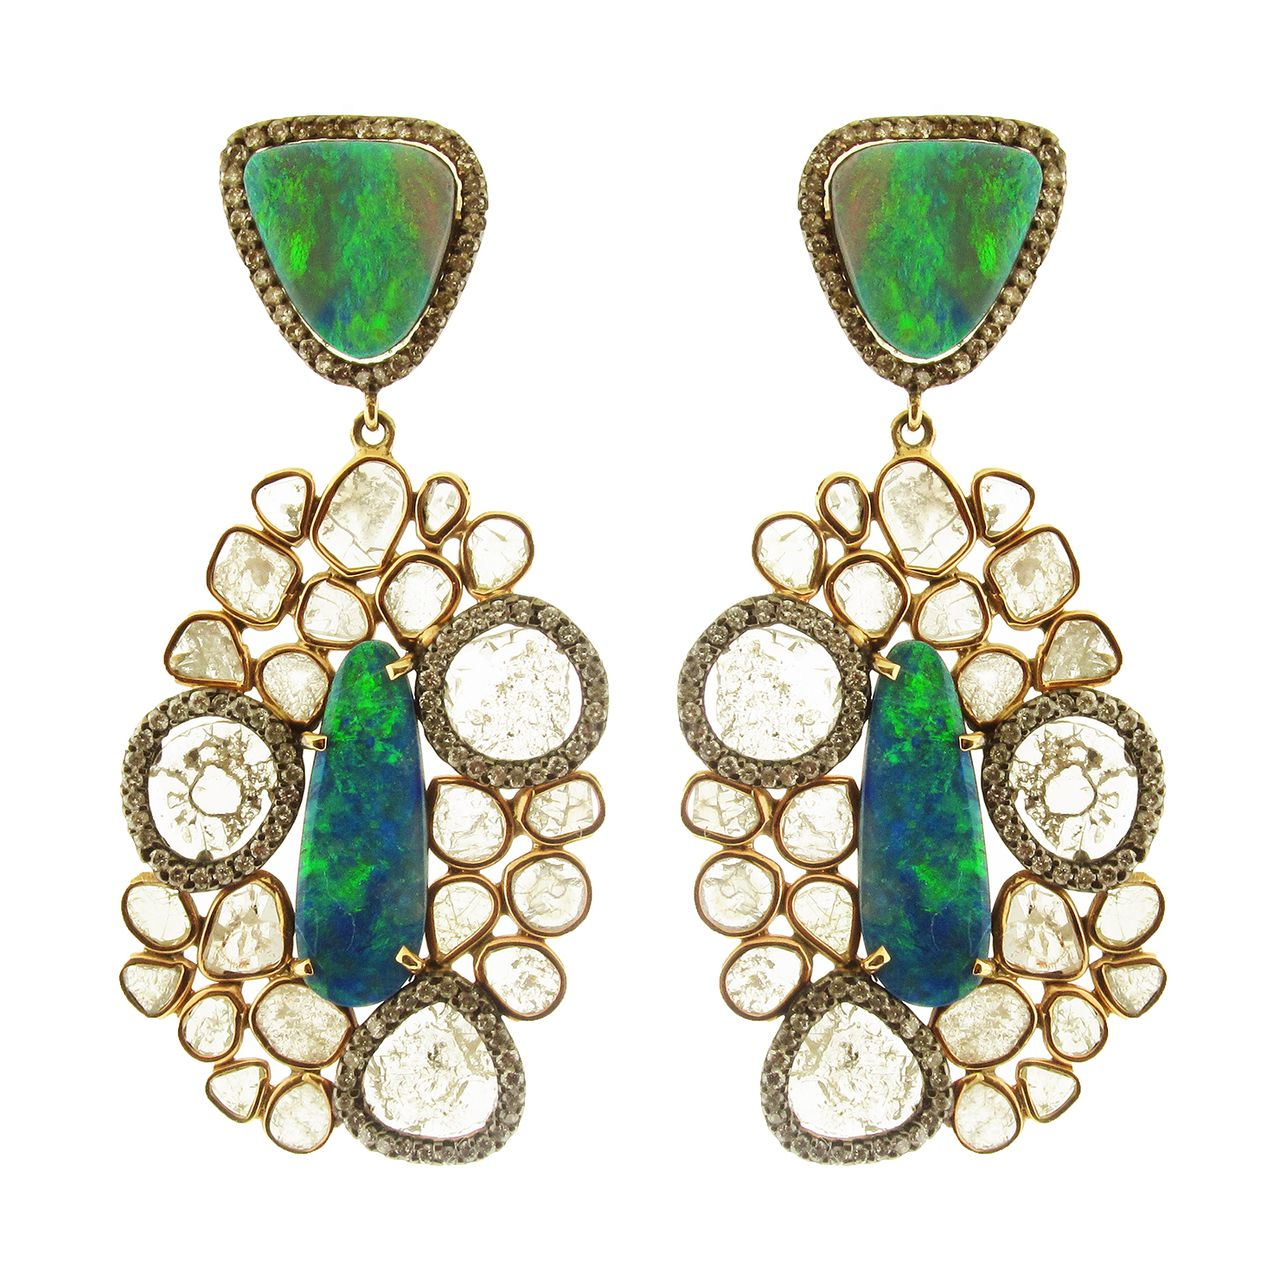 Soho Gem 14K Rose Gold Earrings with Opals and Diamond Slices, $7,725.00